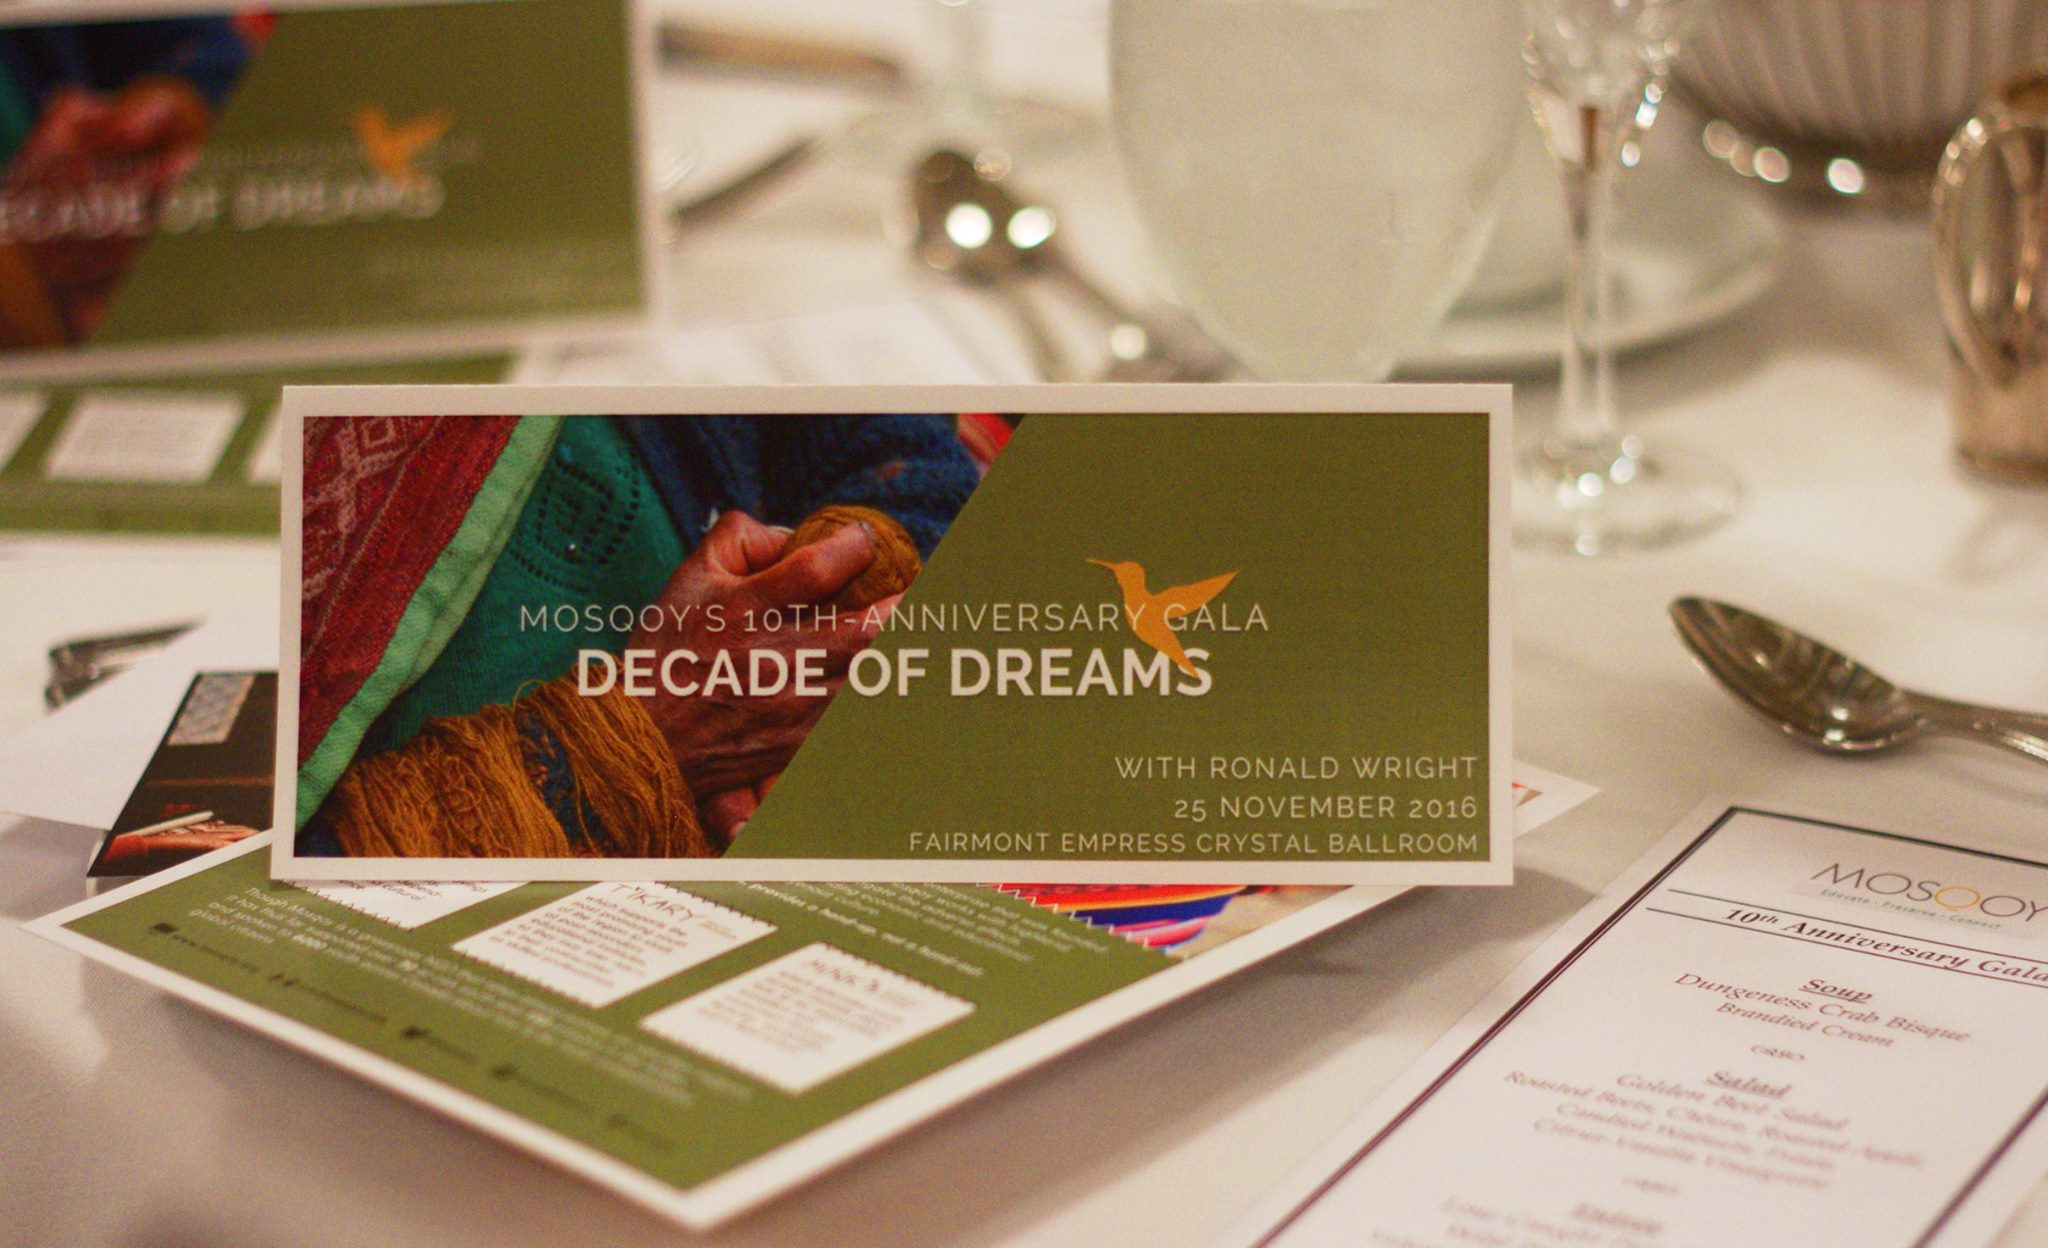 Decade of Dreams brochure on table